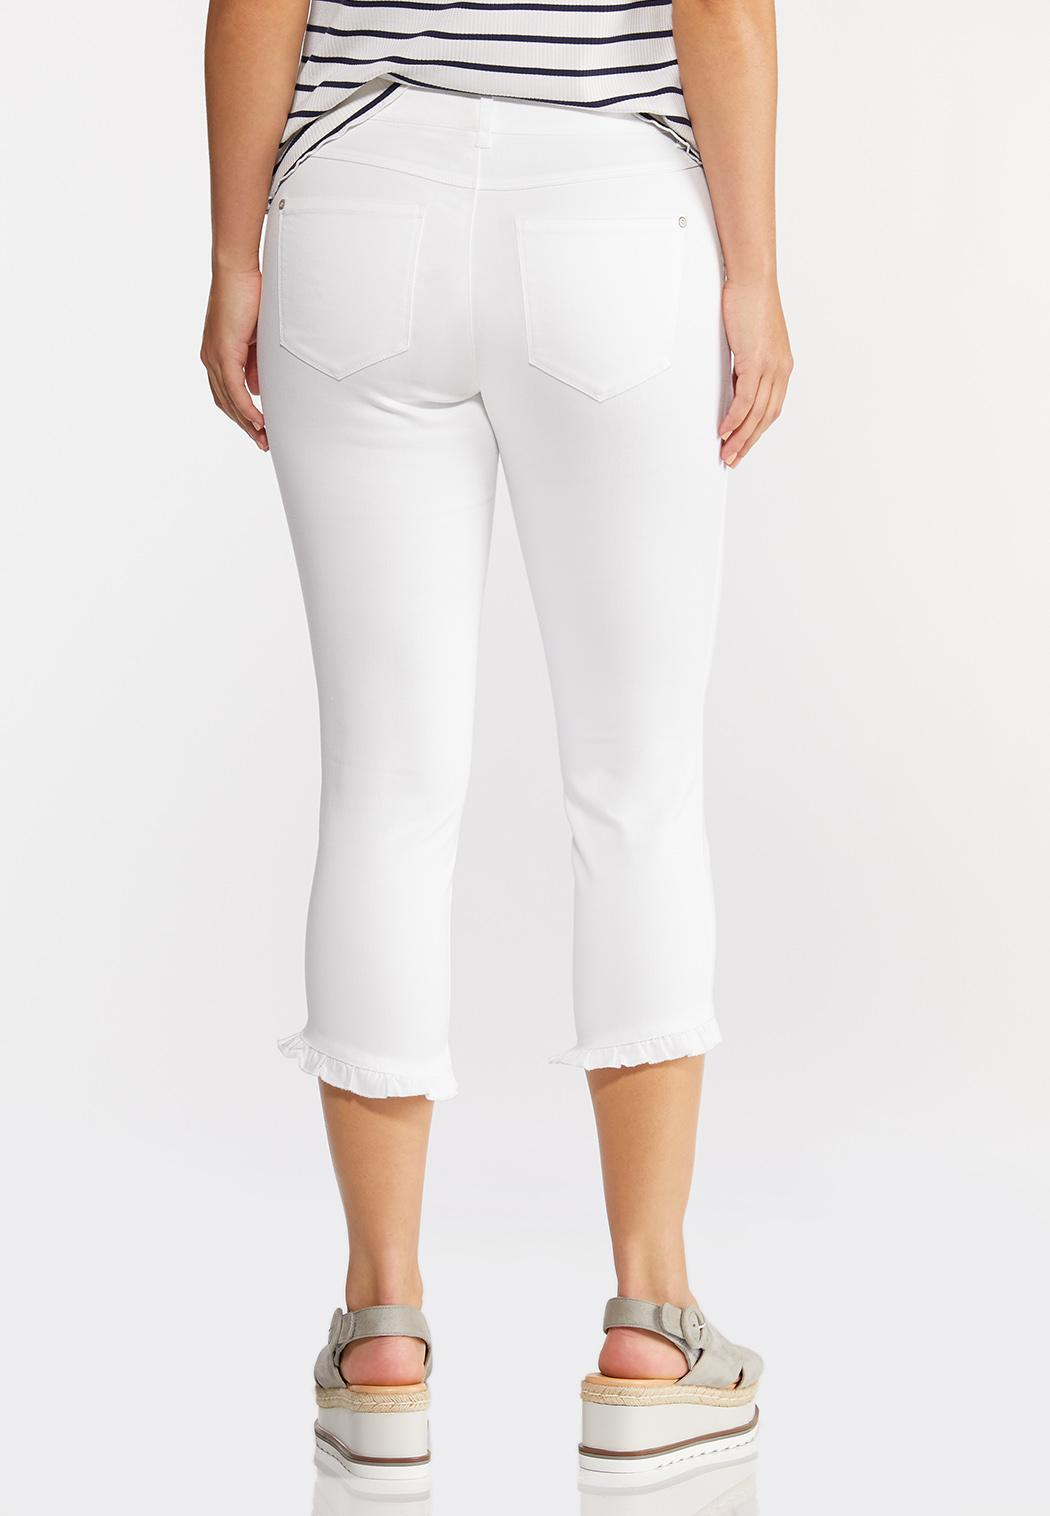 Cropped Ruffle Skinny Jeans (Item #44252665)